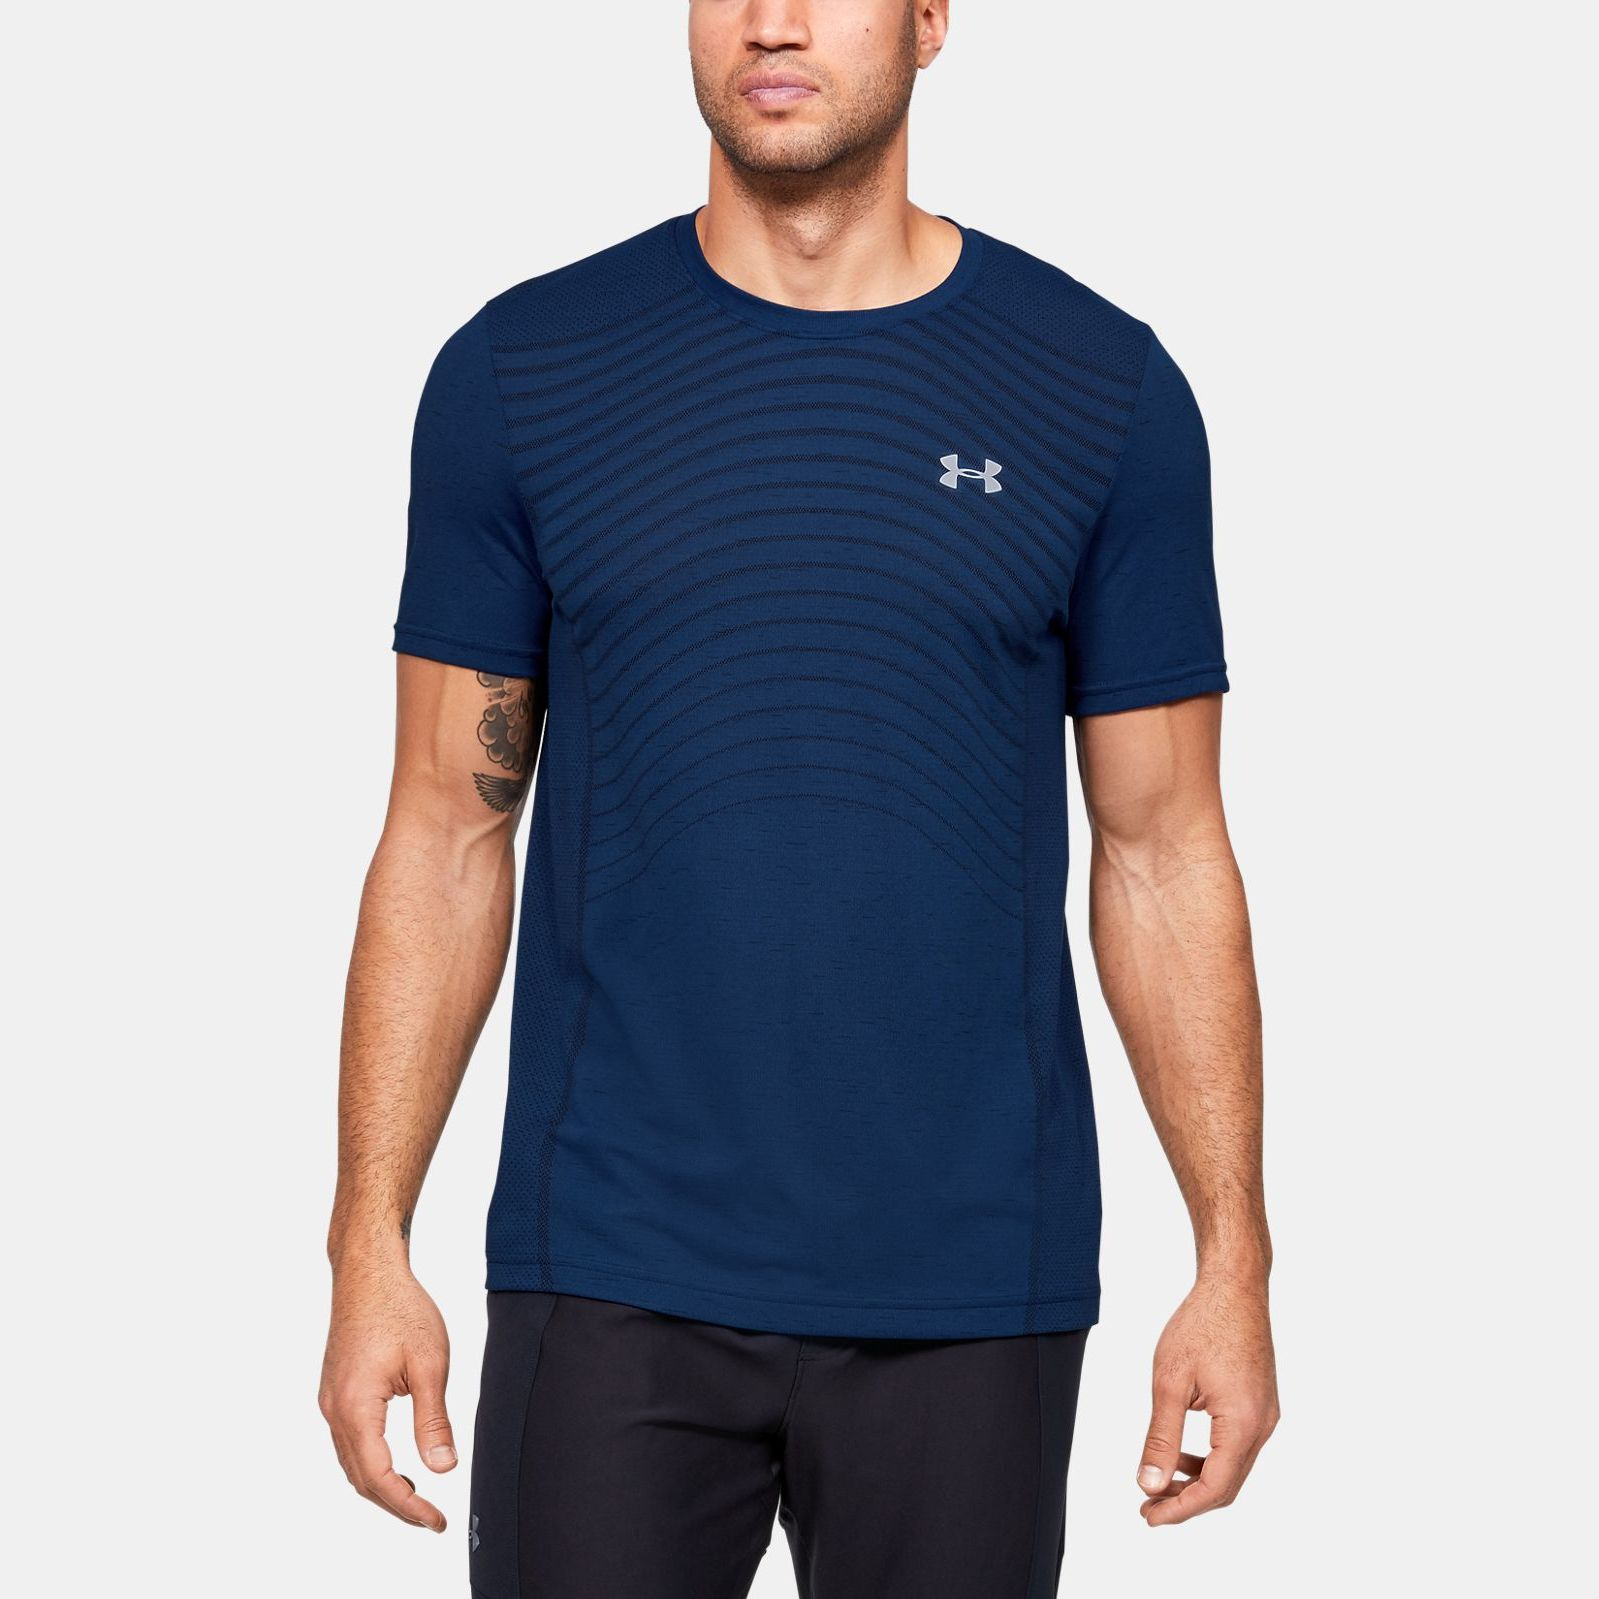 Clothing -  under armour Seamless Wave Short Sleeve 1450